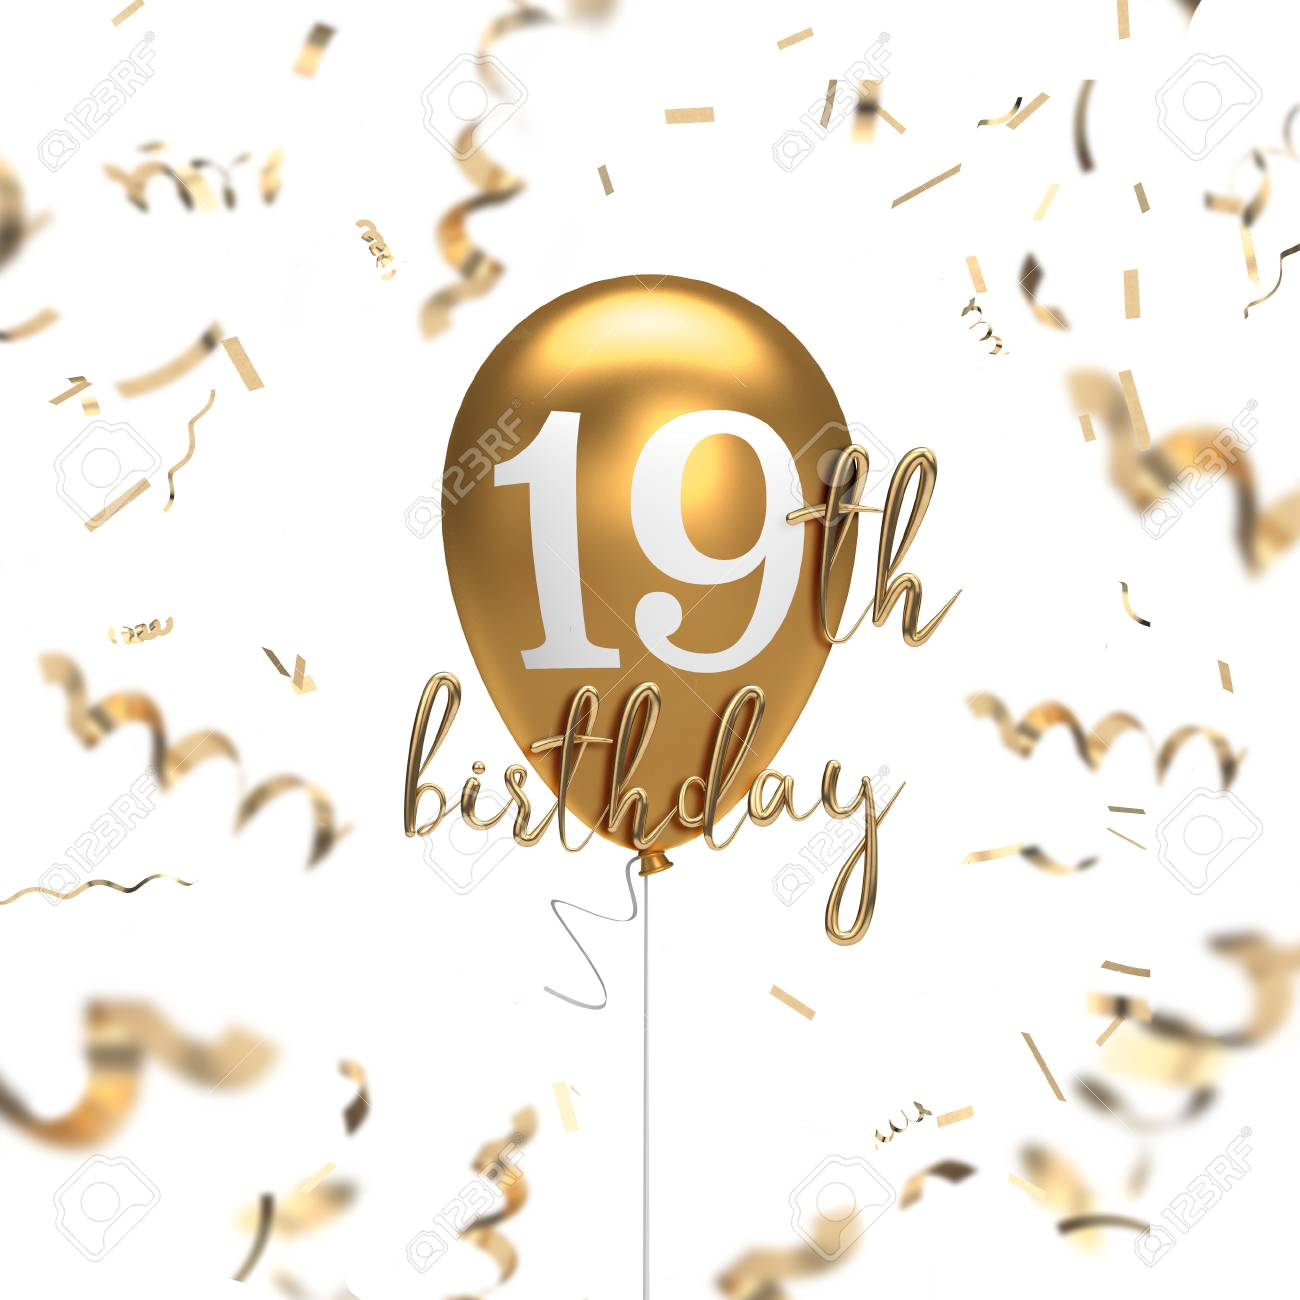 Happy 19th Birthday Gold Balloon Greeting Background 3D Rendering Stock Photo